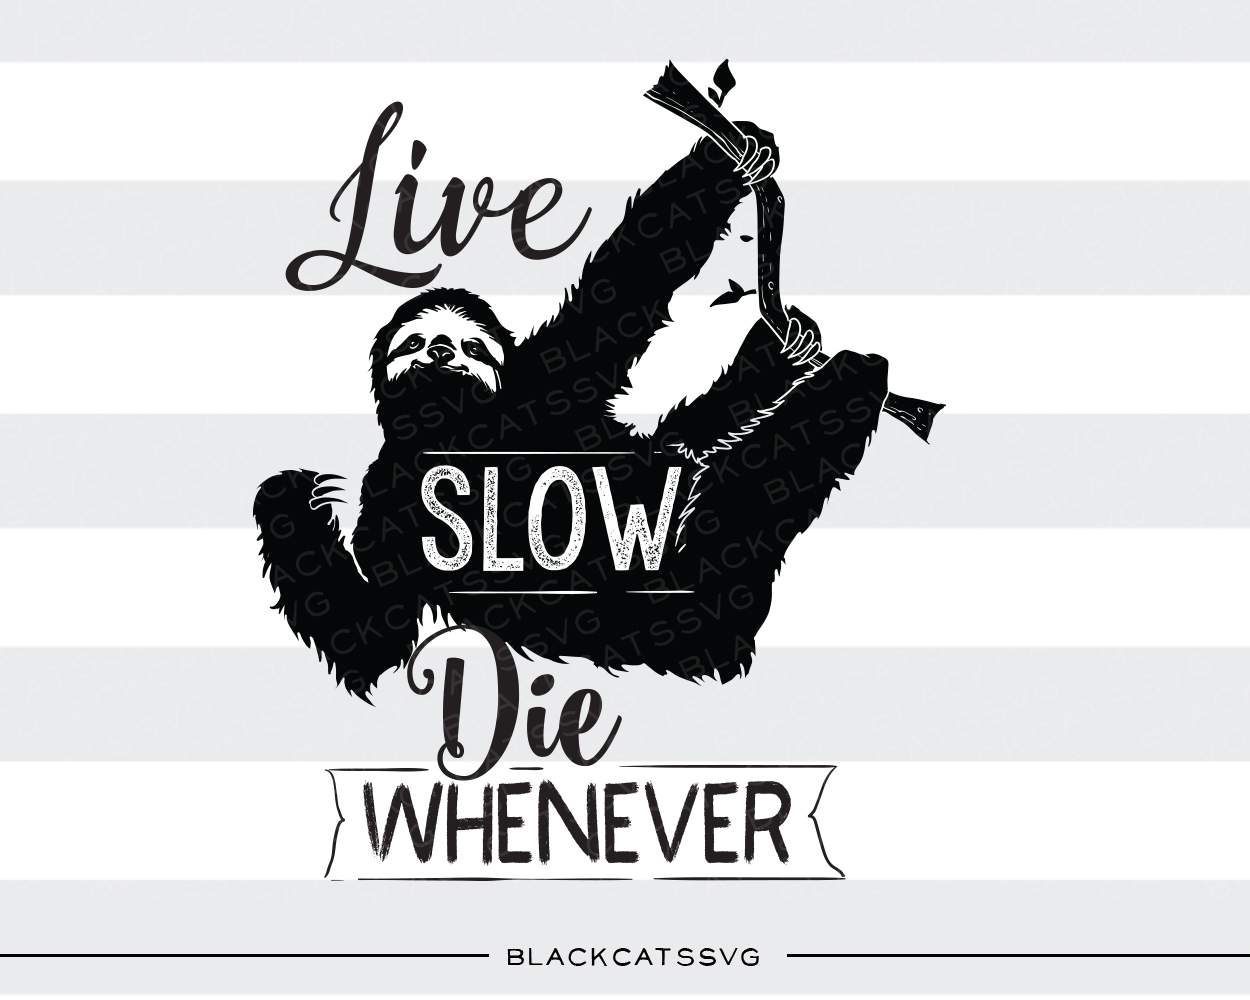 Live Slow Die Whenever Quotes Craft Cut File By BlackCatsSVG